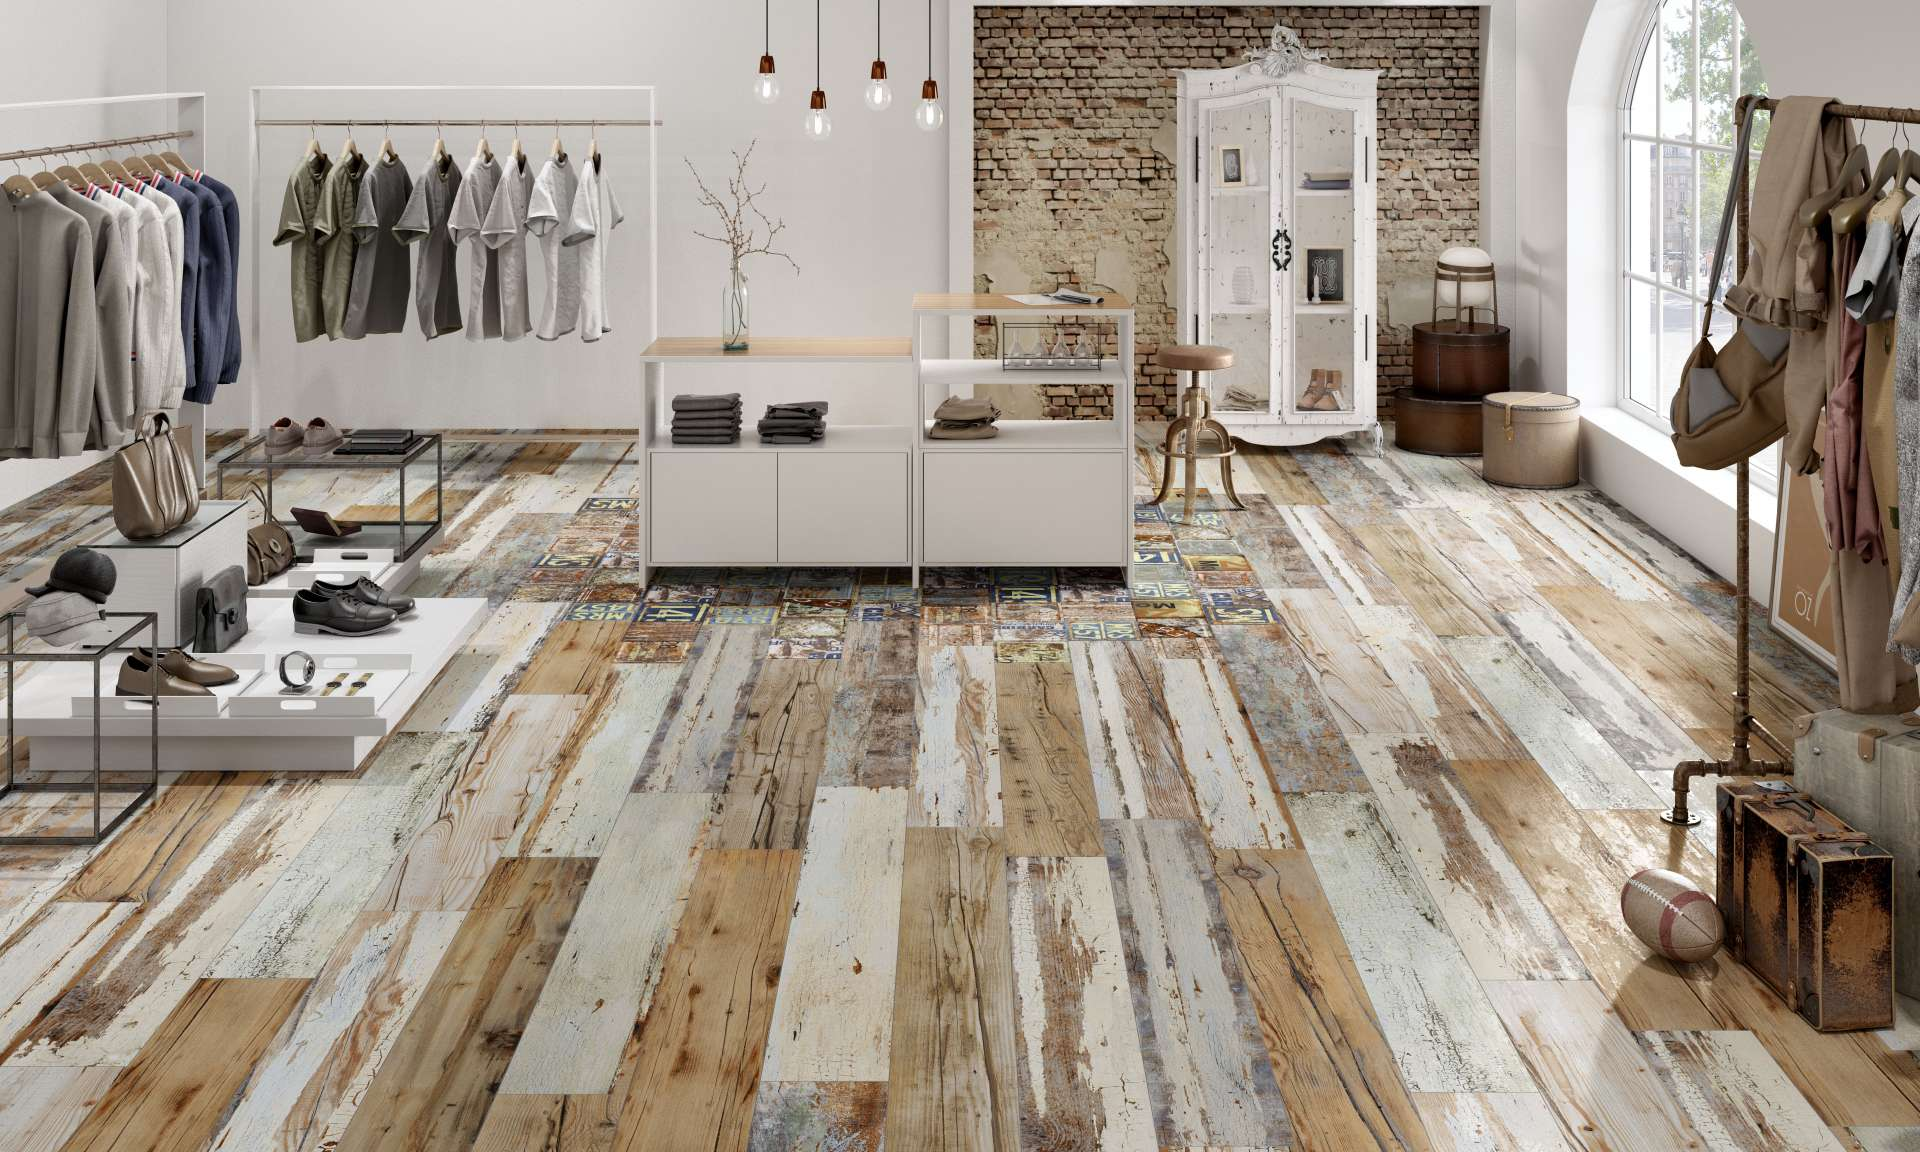 Unique By Peronda Ss Tile And Stone Toronto # Foresta Meubles